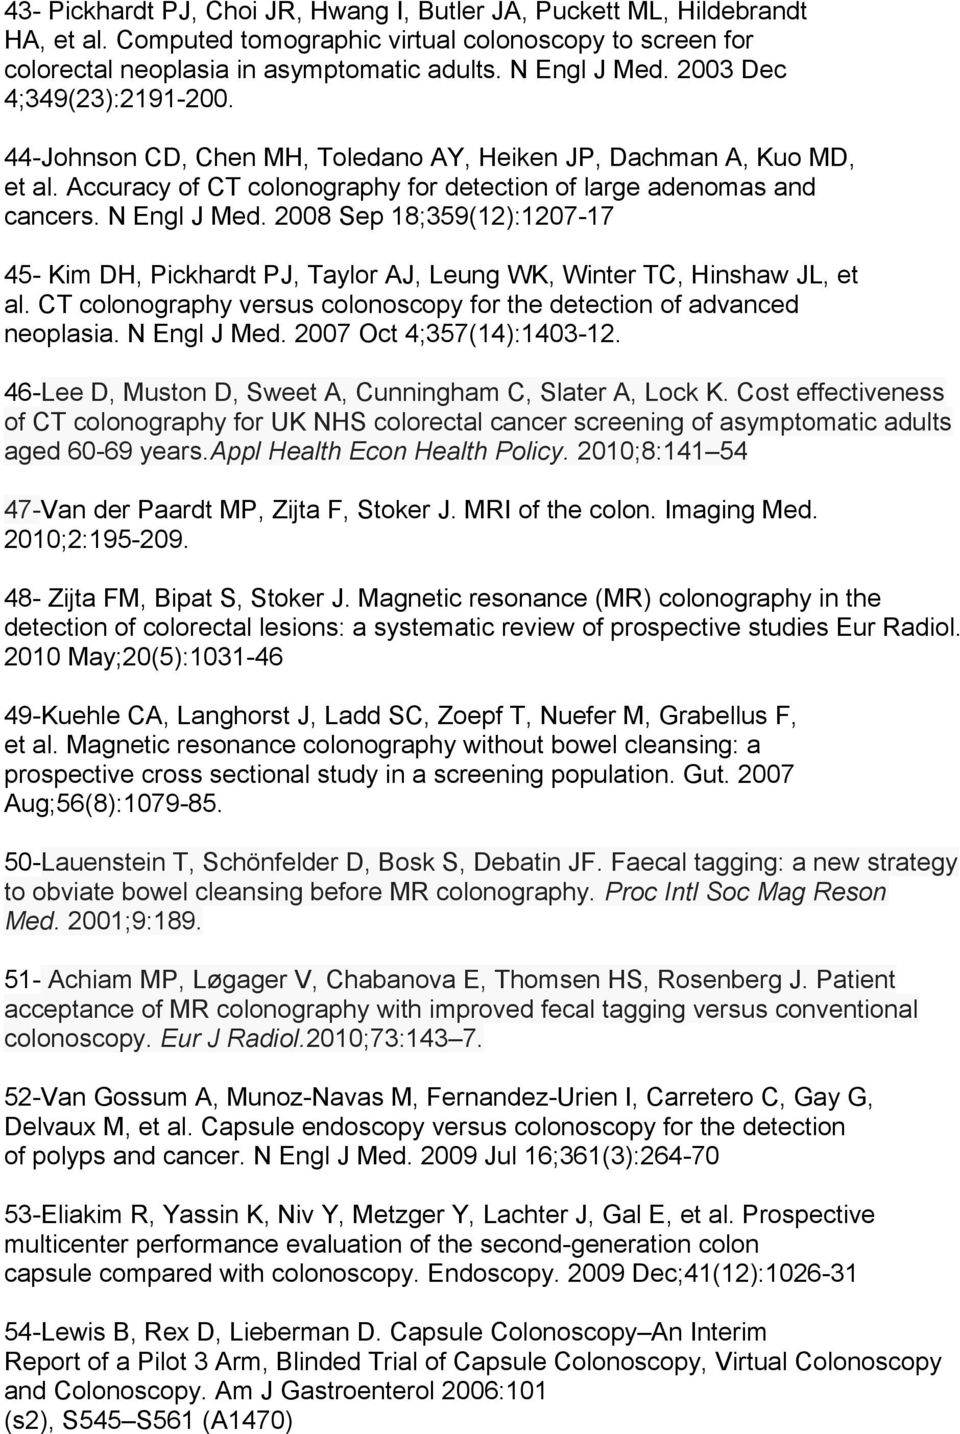 2008 Sep 18;359(12):1207-17 45- Kim DH, Pickhardt PJ, Taylor AJ, Leung WK, Winter TC, Hinshaw JL, et al. CT colonography versus colonoscopy for the detection of advanced neoplasia. N Engl J Med.